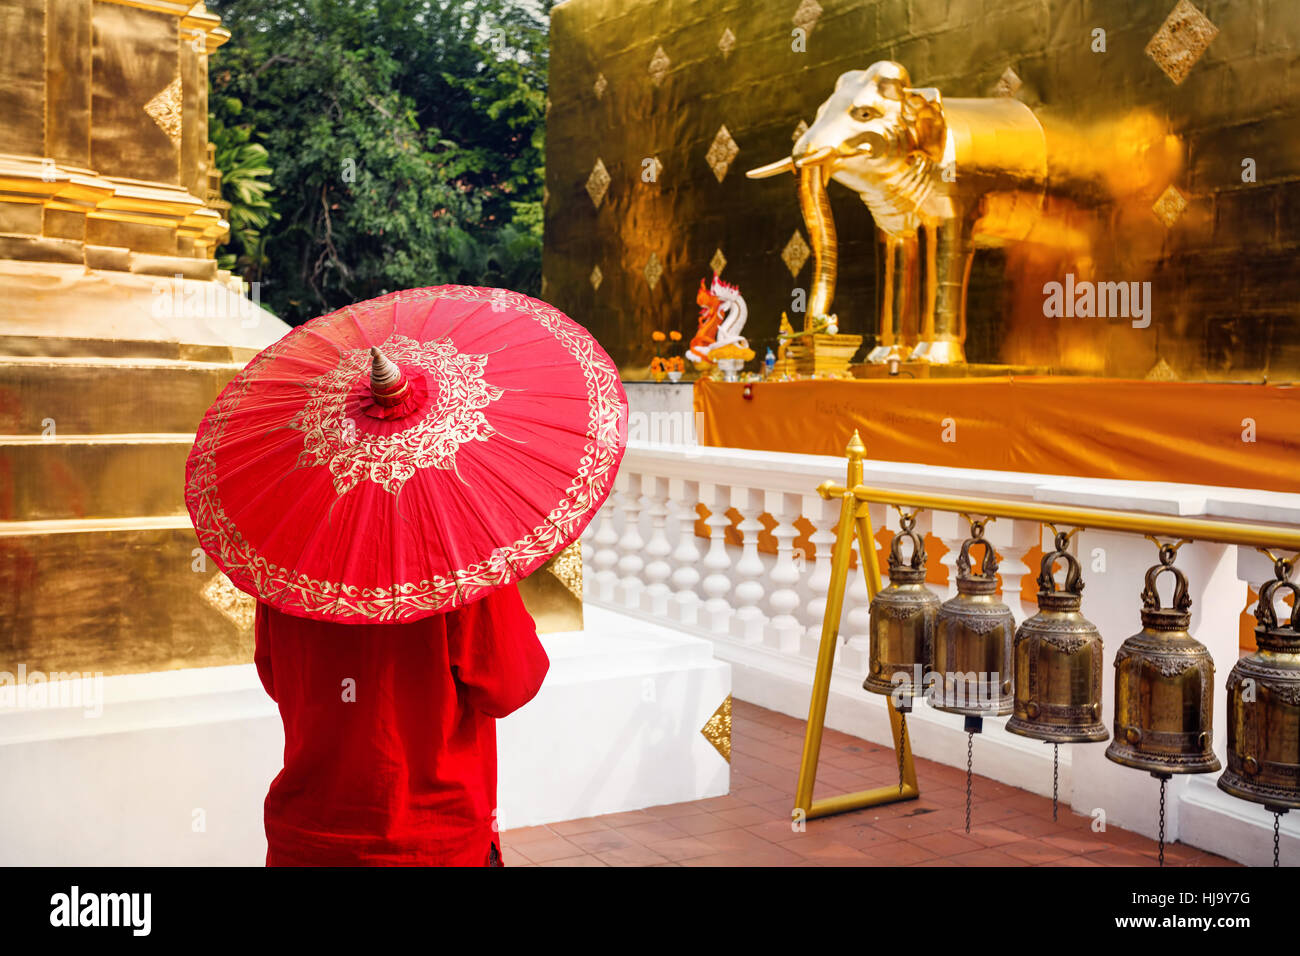 Woman tourist with red traditional Thai umbrella in Golden temple Wat Phra Singh in Chiang Mai, Thailand - Stock Image